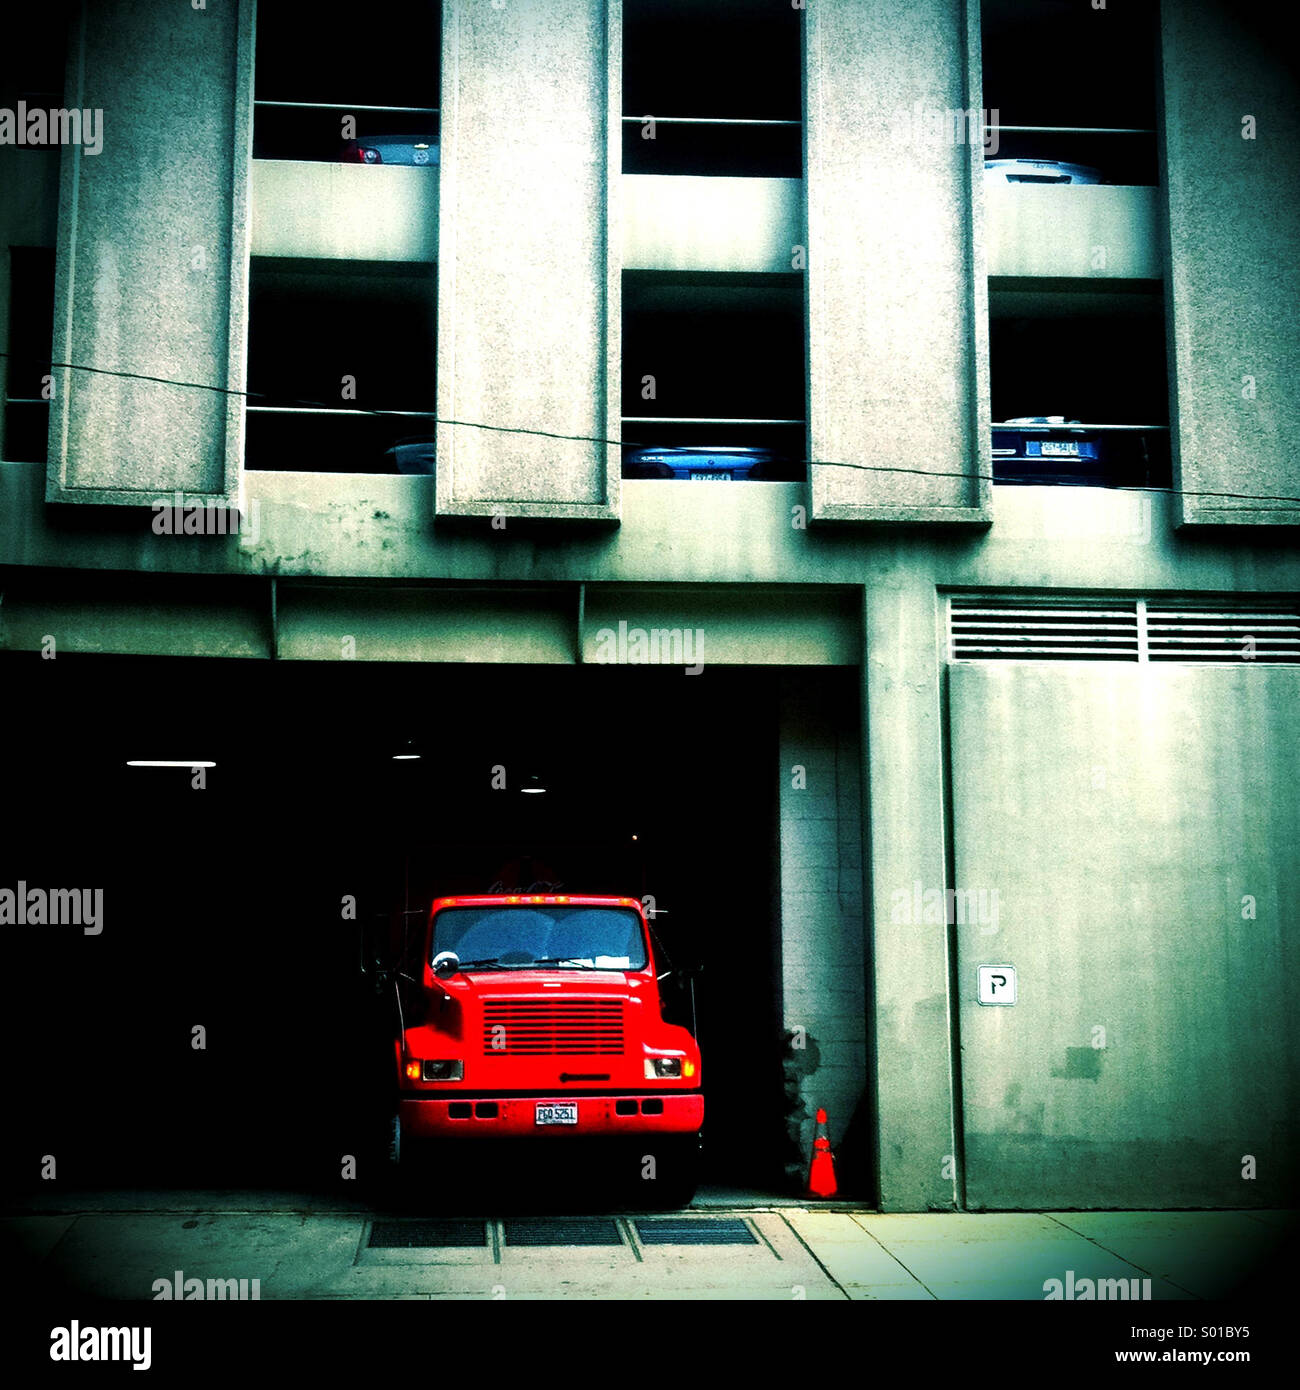 A red dump truck is parked in the entry to a parking garage - Stock Image